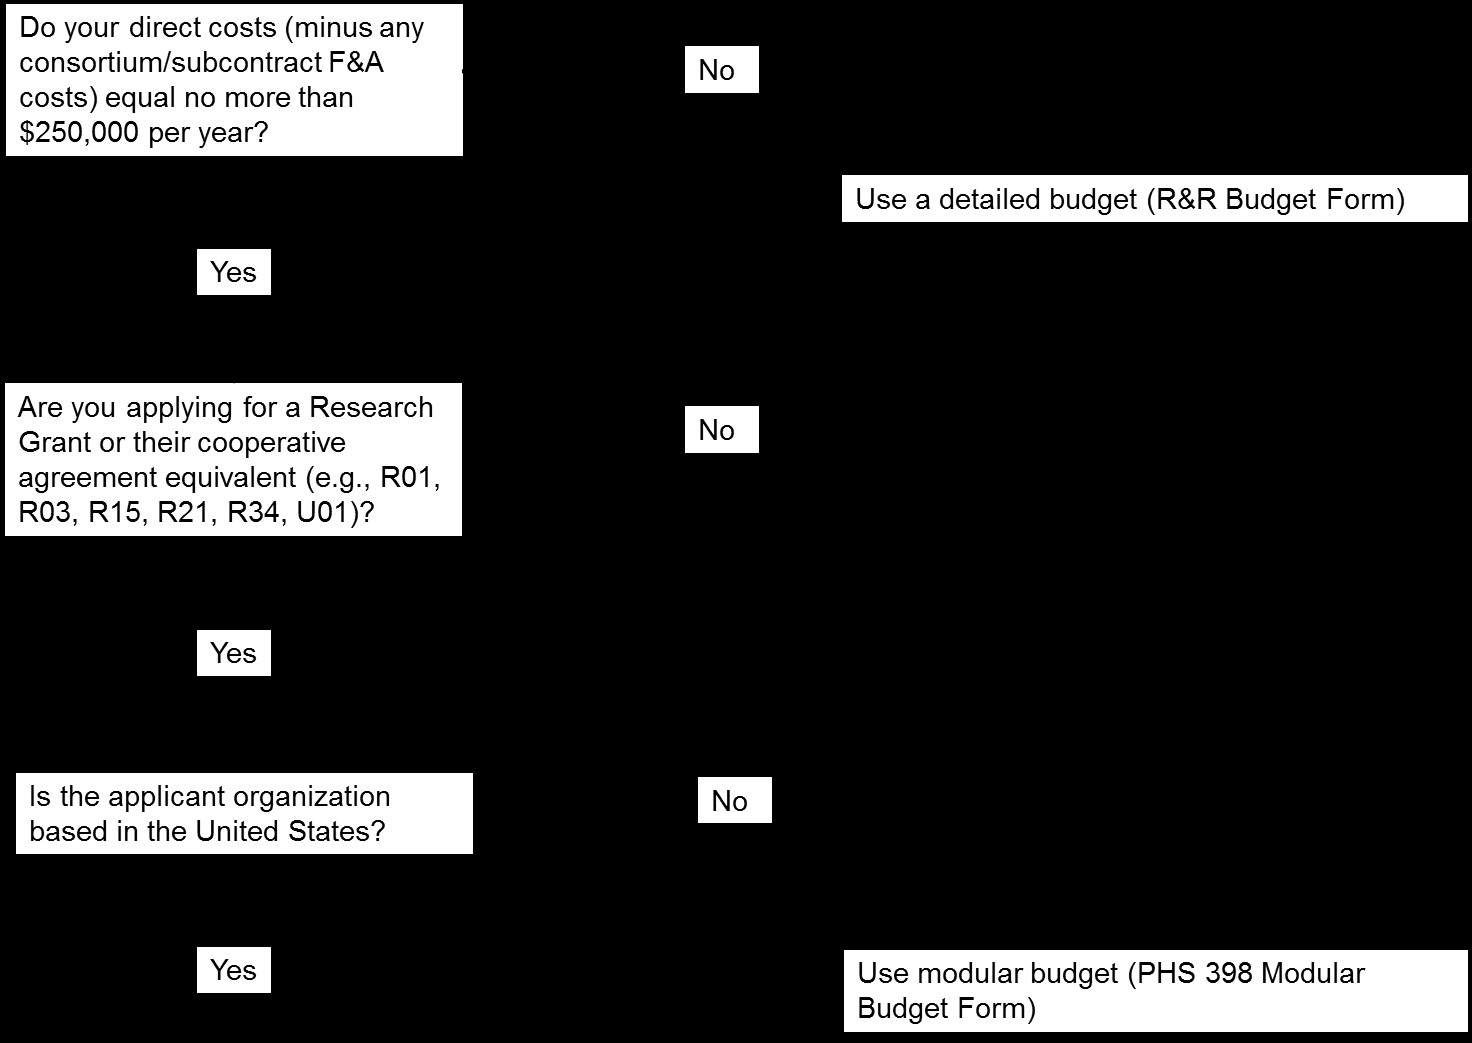 Flowchart explaining when to use detailed or modular budget for NIH applications.